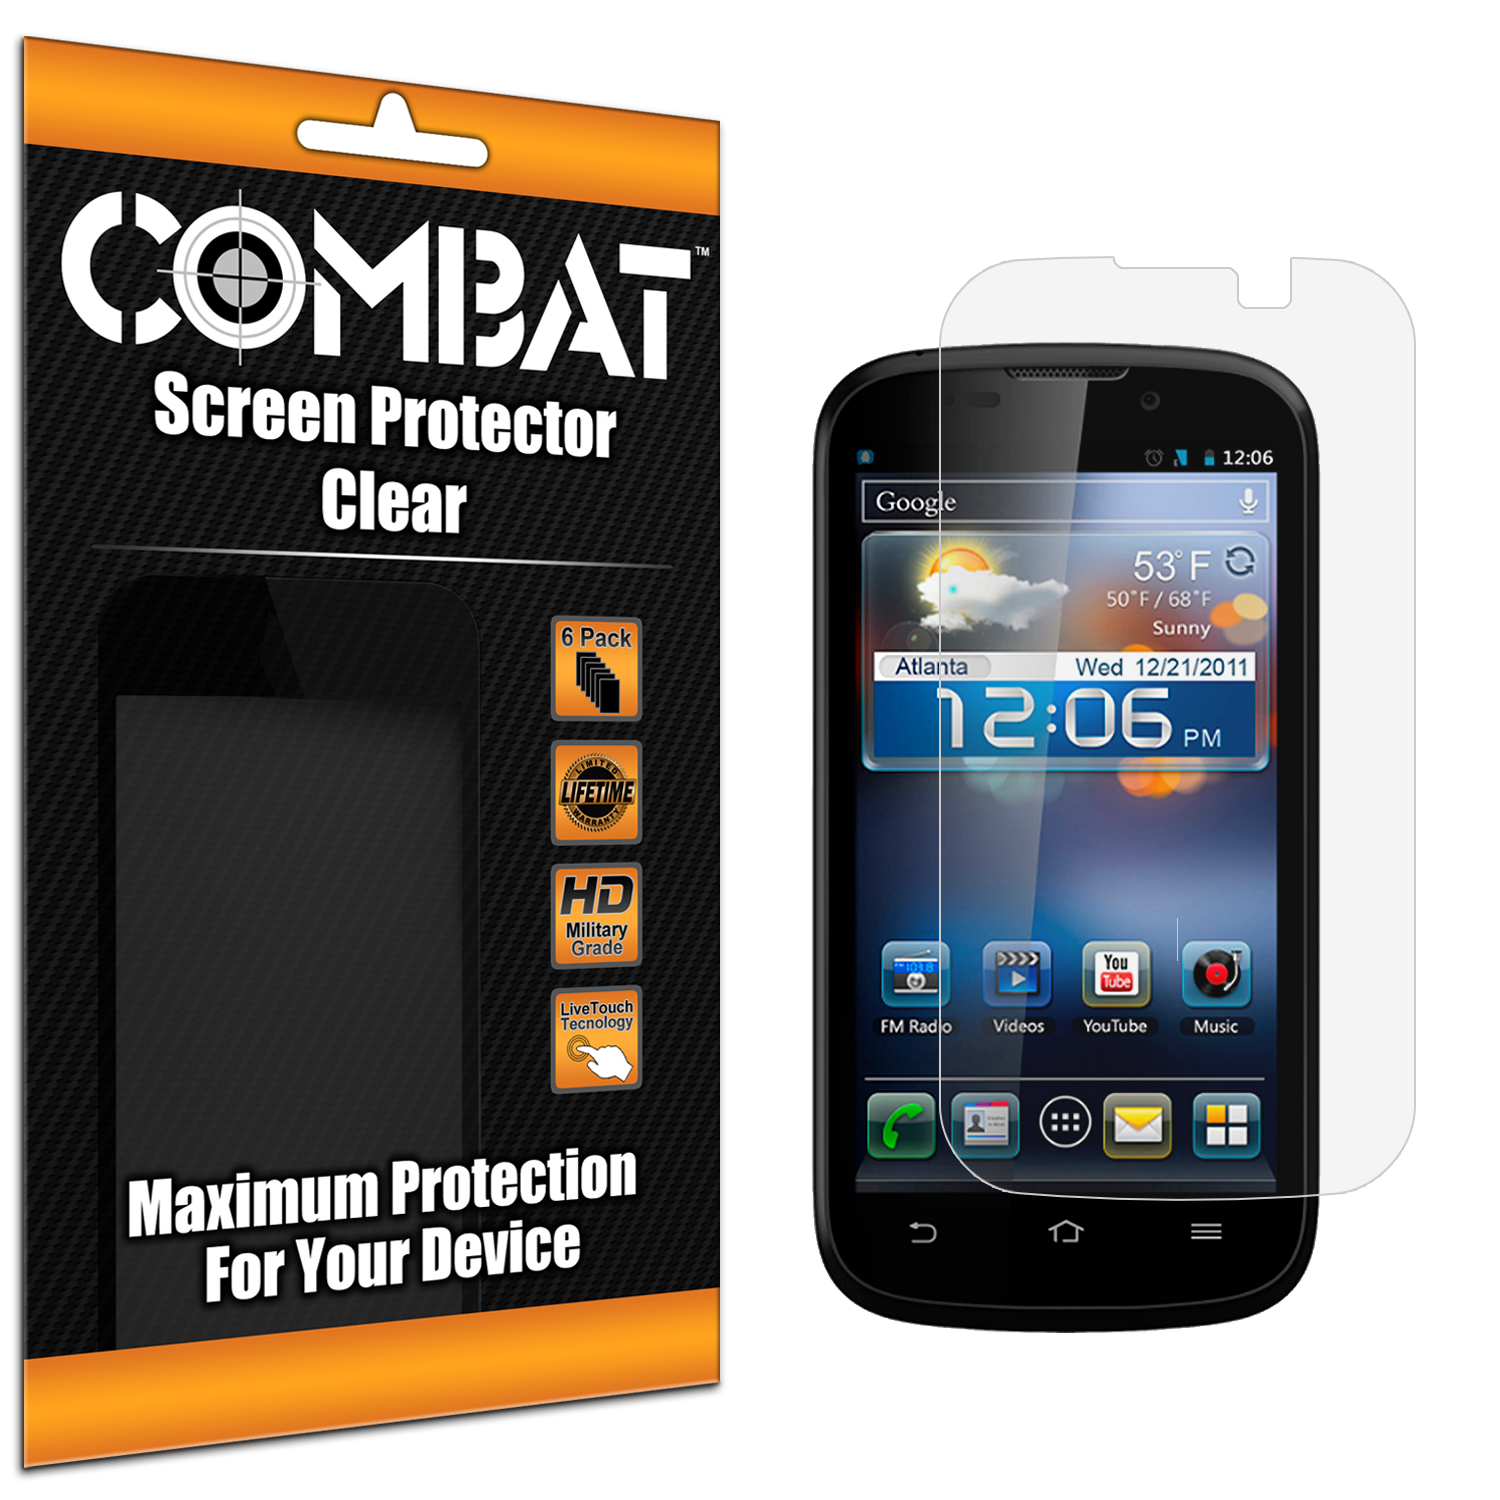 ZTE Awe N800 Combat 6 Pack HD Clear Screen Protector